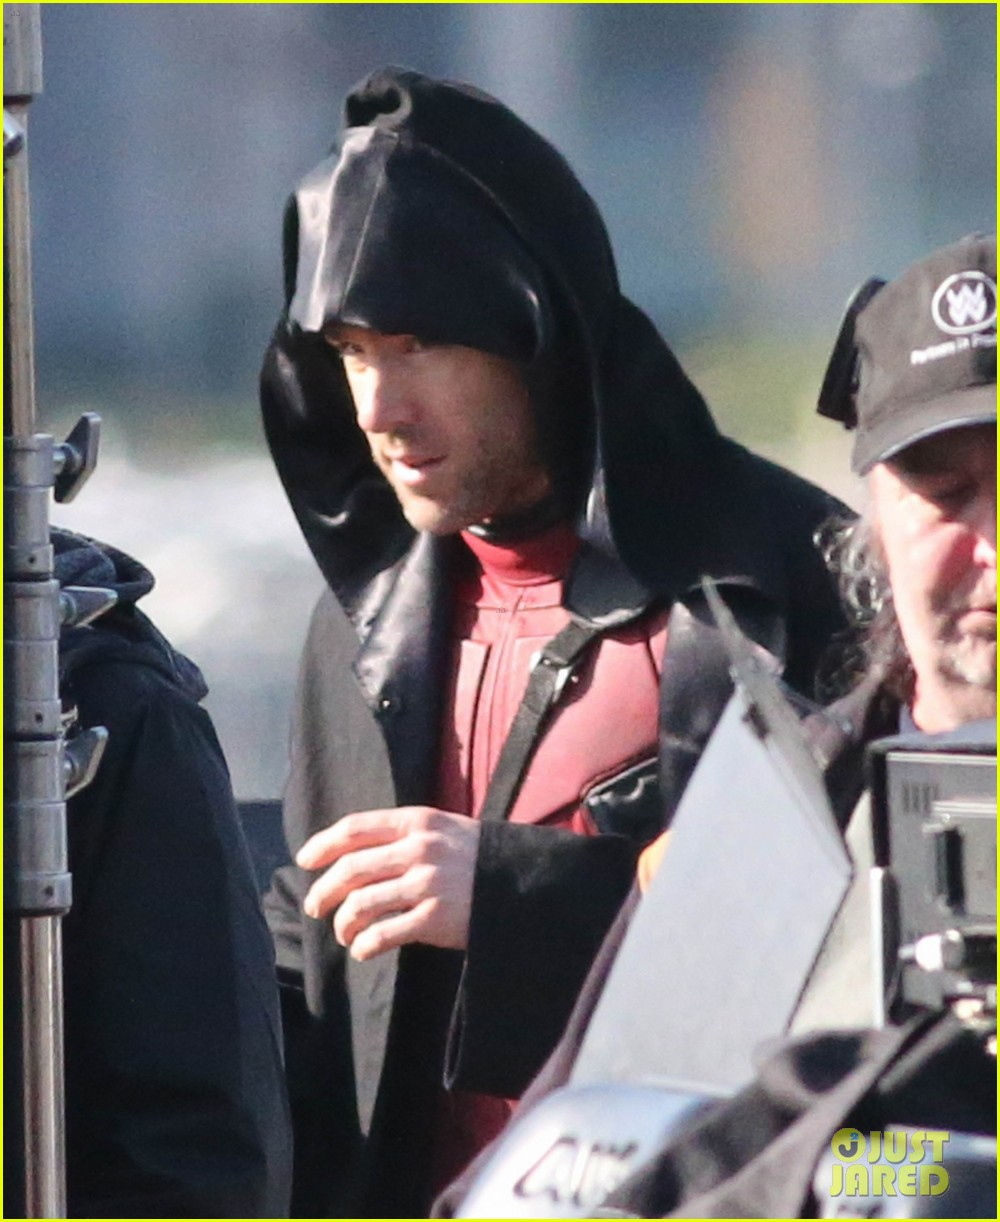 http://cdn02.cdn.justjared.com/wp-content/uploads/2015/04/ryan-ded/ryan-reynolds-pictured-unmasked-deadpool-costume-32.jpg